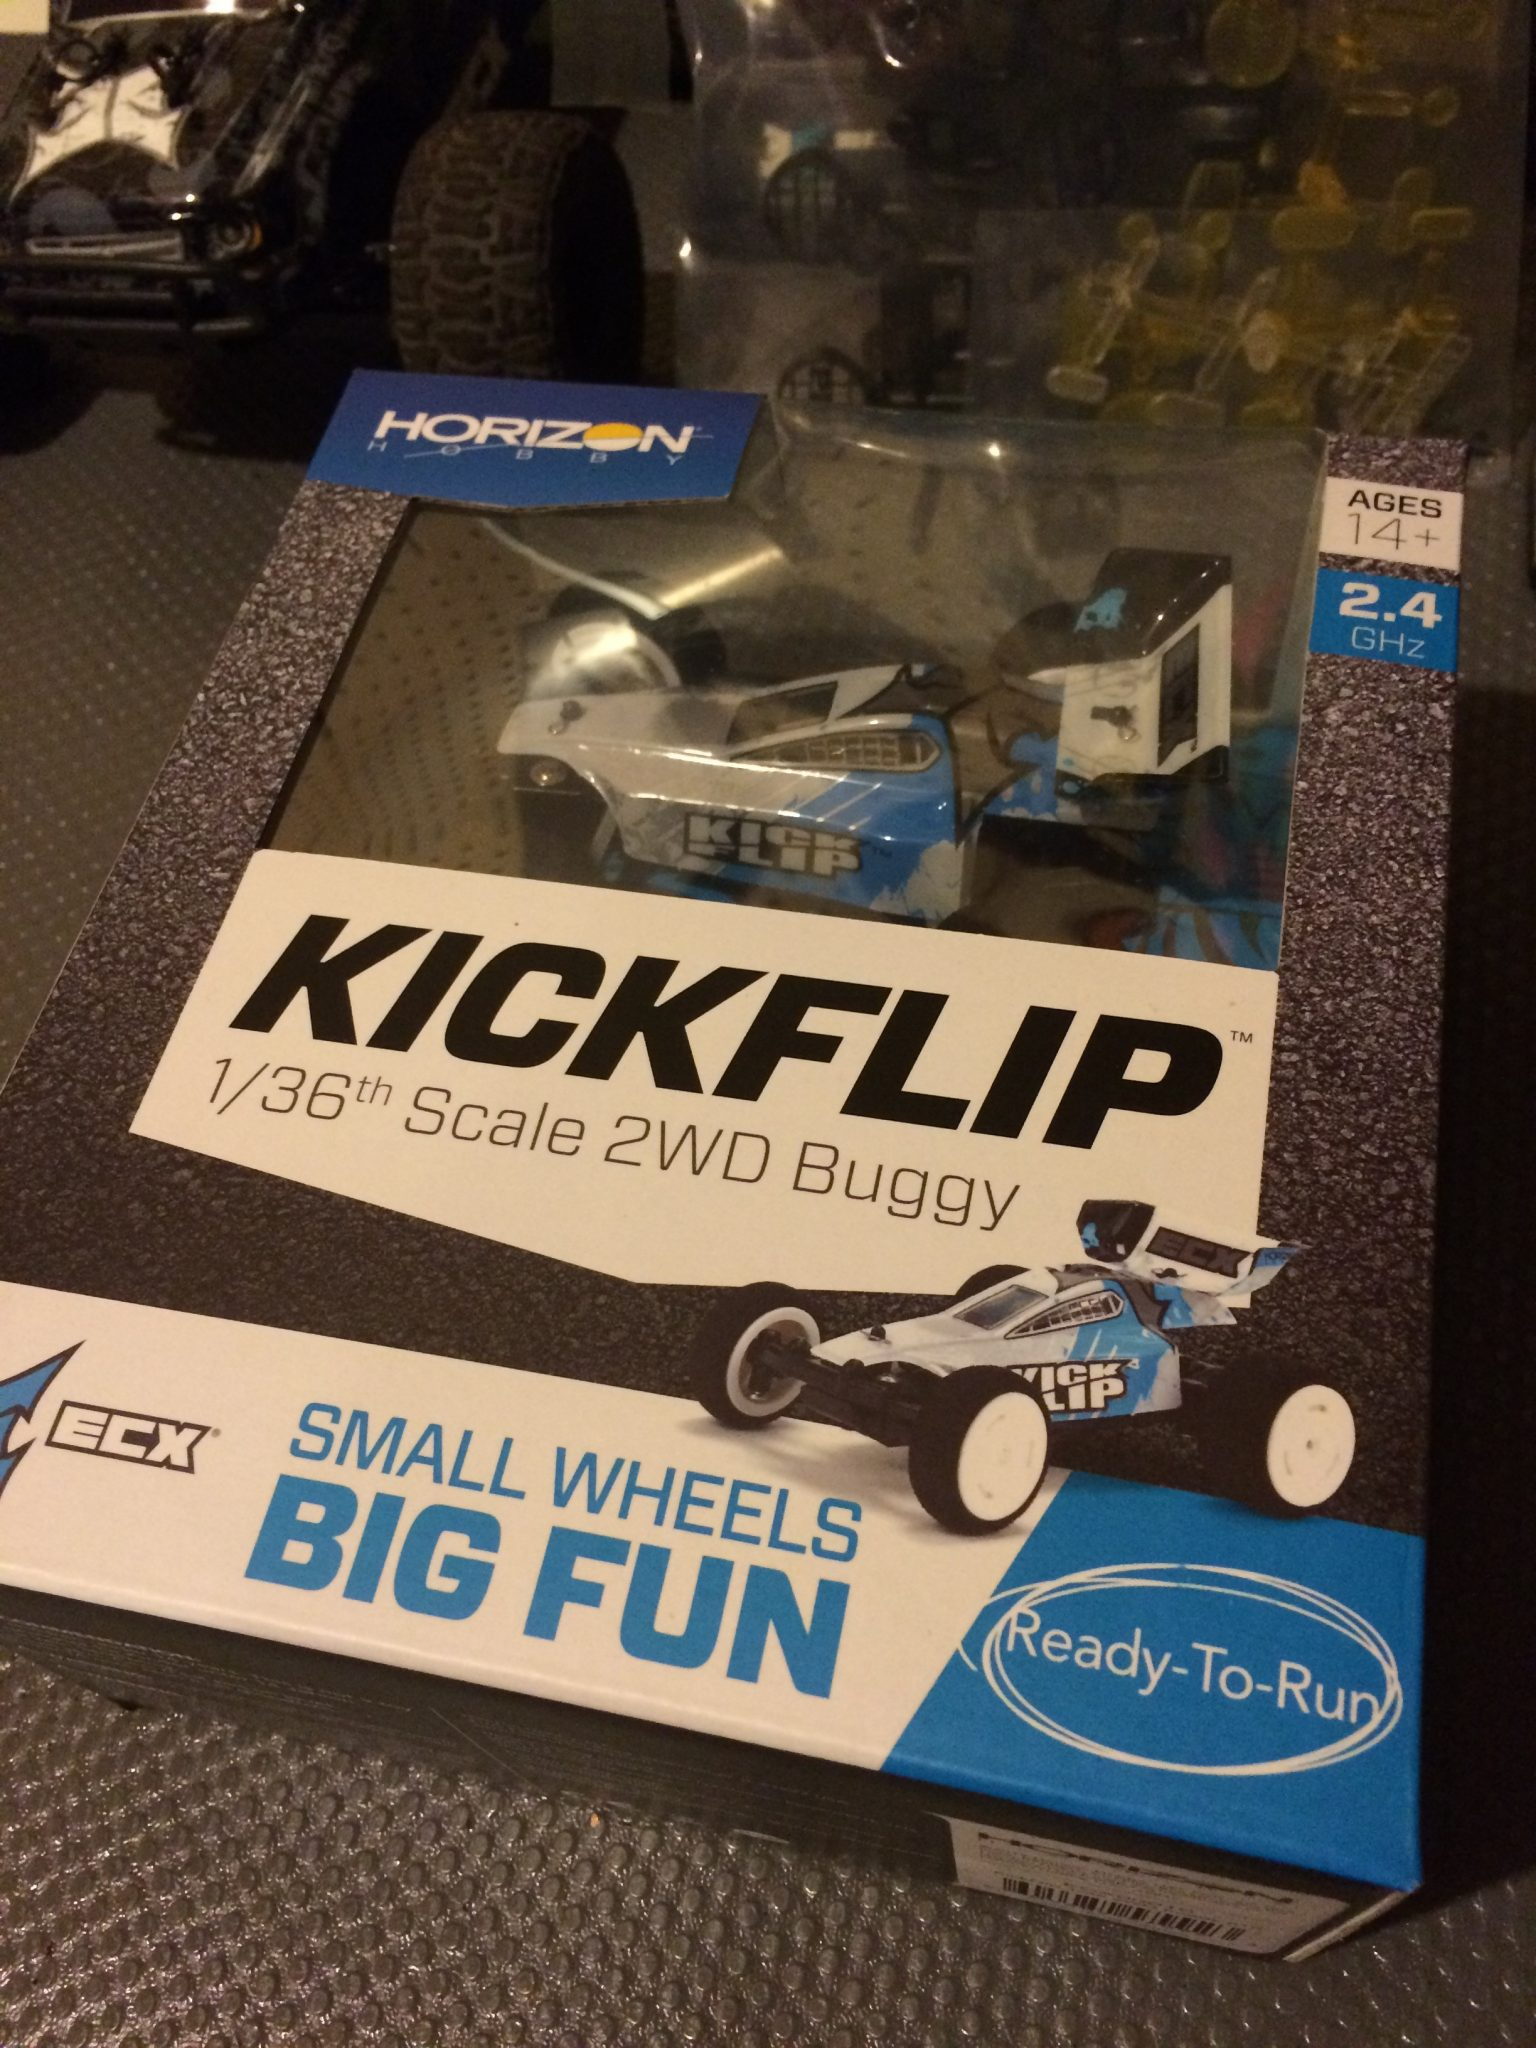 ECX KickFlip 1/36-scale Buggy Unboxing [Video]